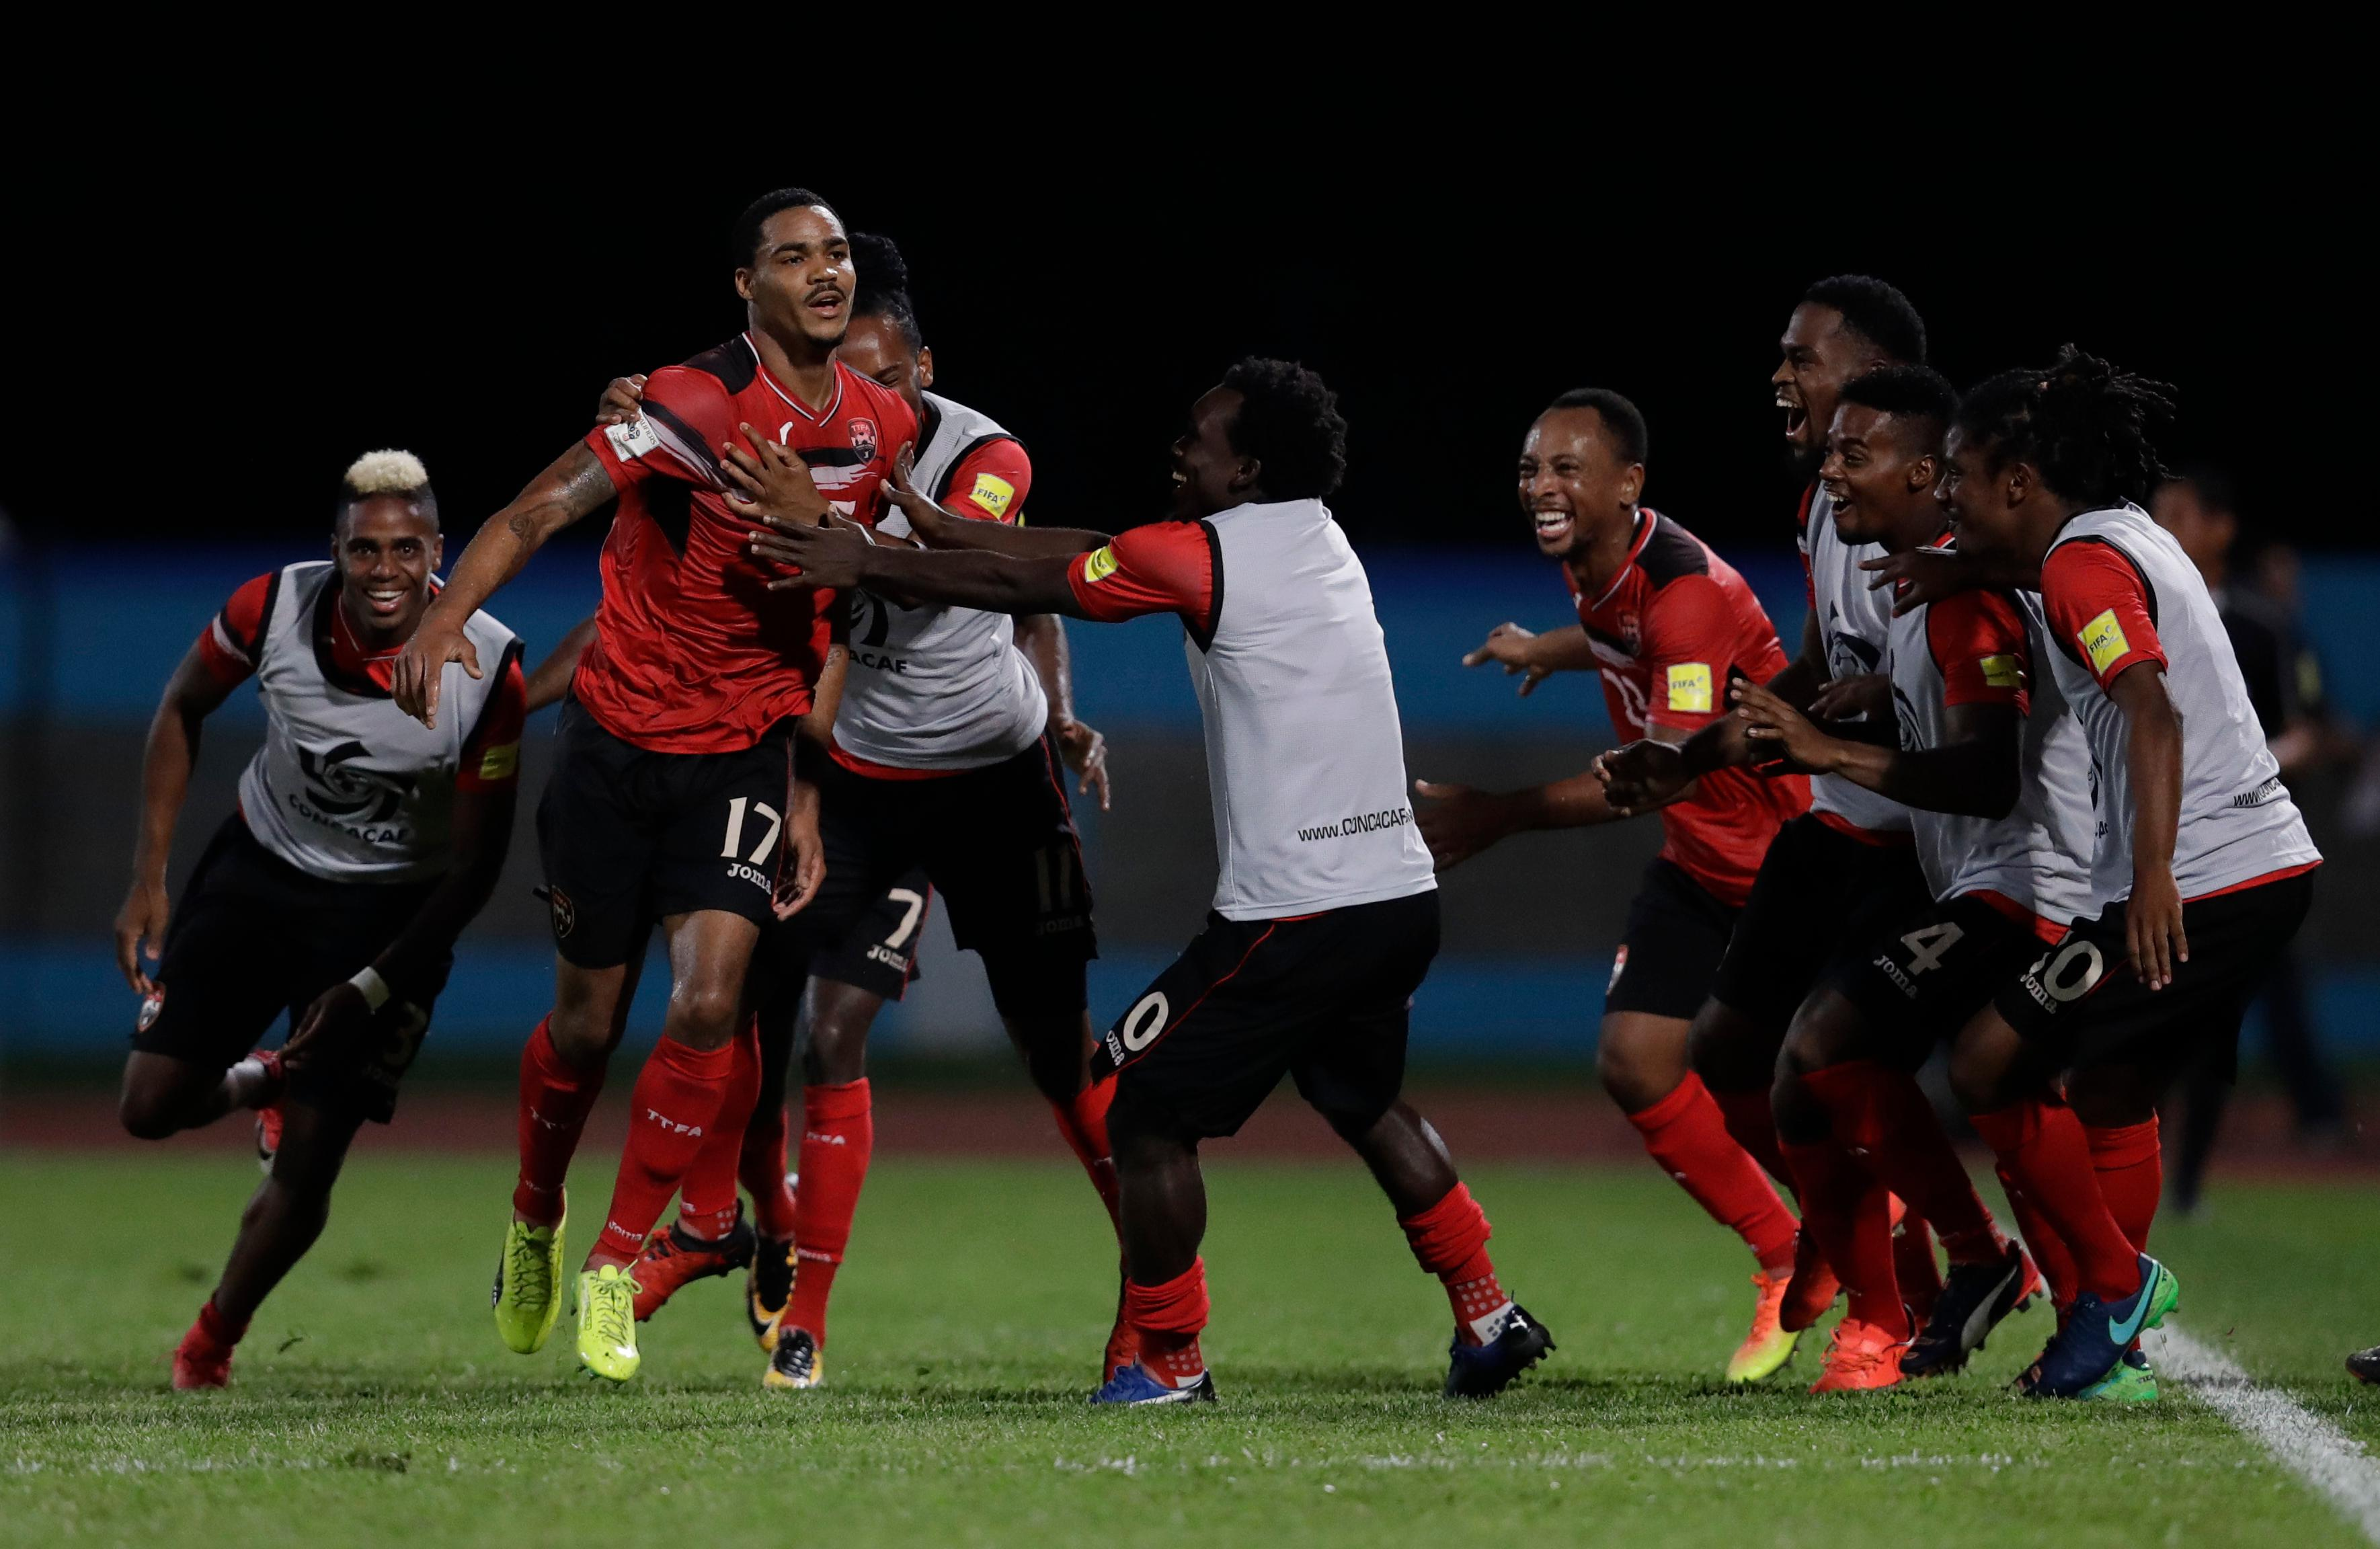 Trinidad and Tobago's Alvin Jones (17) celebrates with his teammates after scoring against U.S. during a World Cup qualifying soccer match in Couva, Trinidad, Tuesday, Oct. 10, 2017. (AP Photo/Rebecca Blackwell)